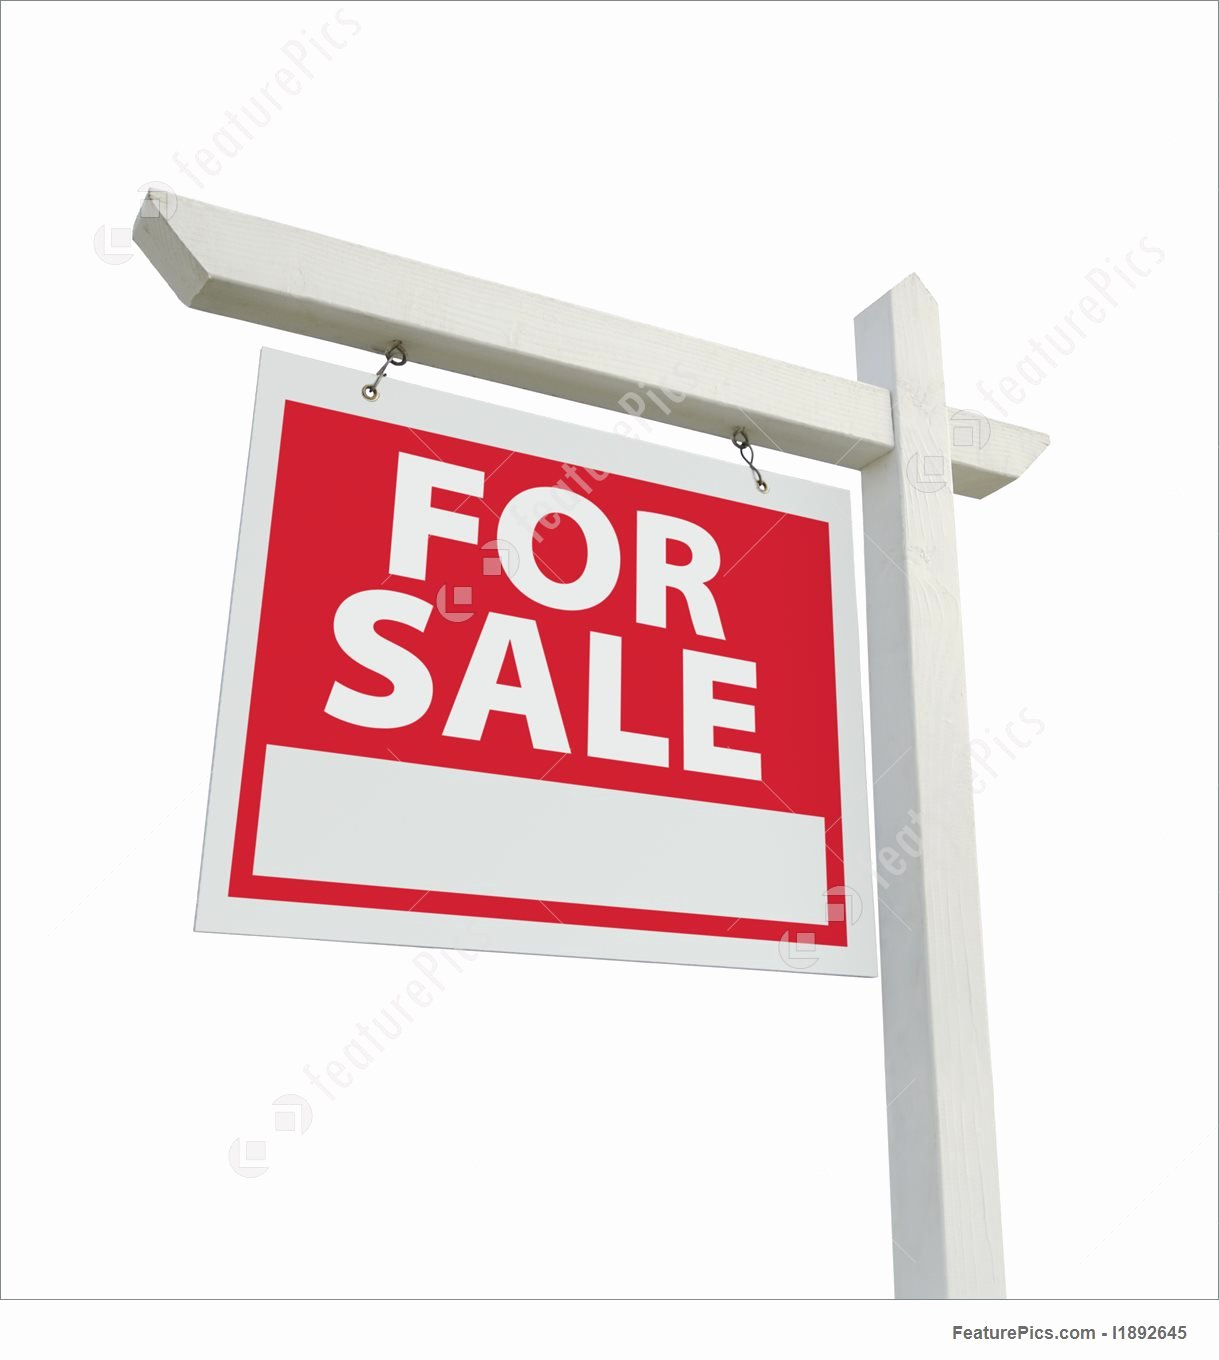 Templates for Sale Real Estate Sign Stock Image